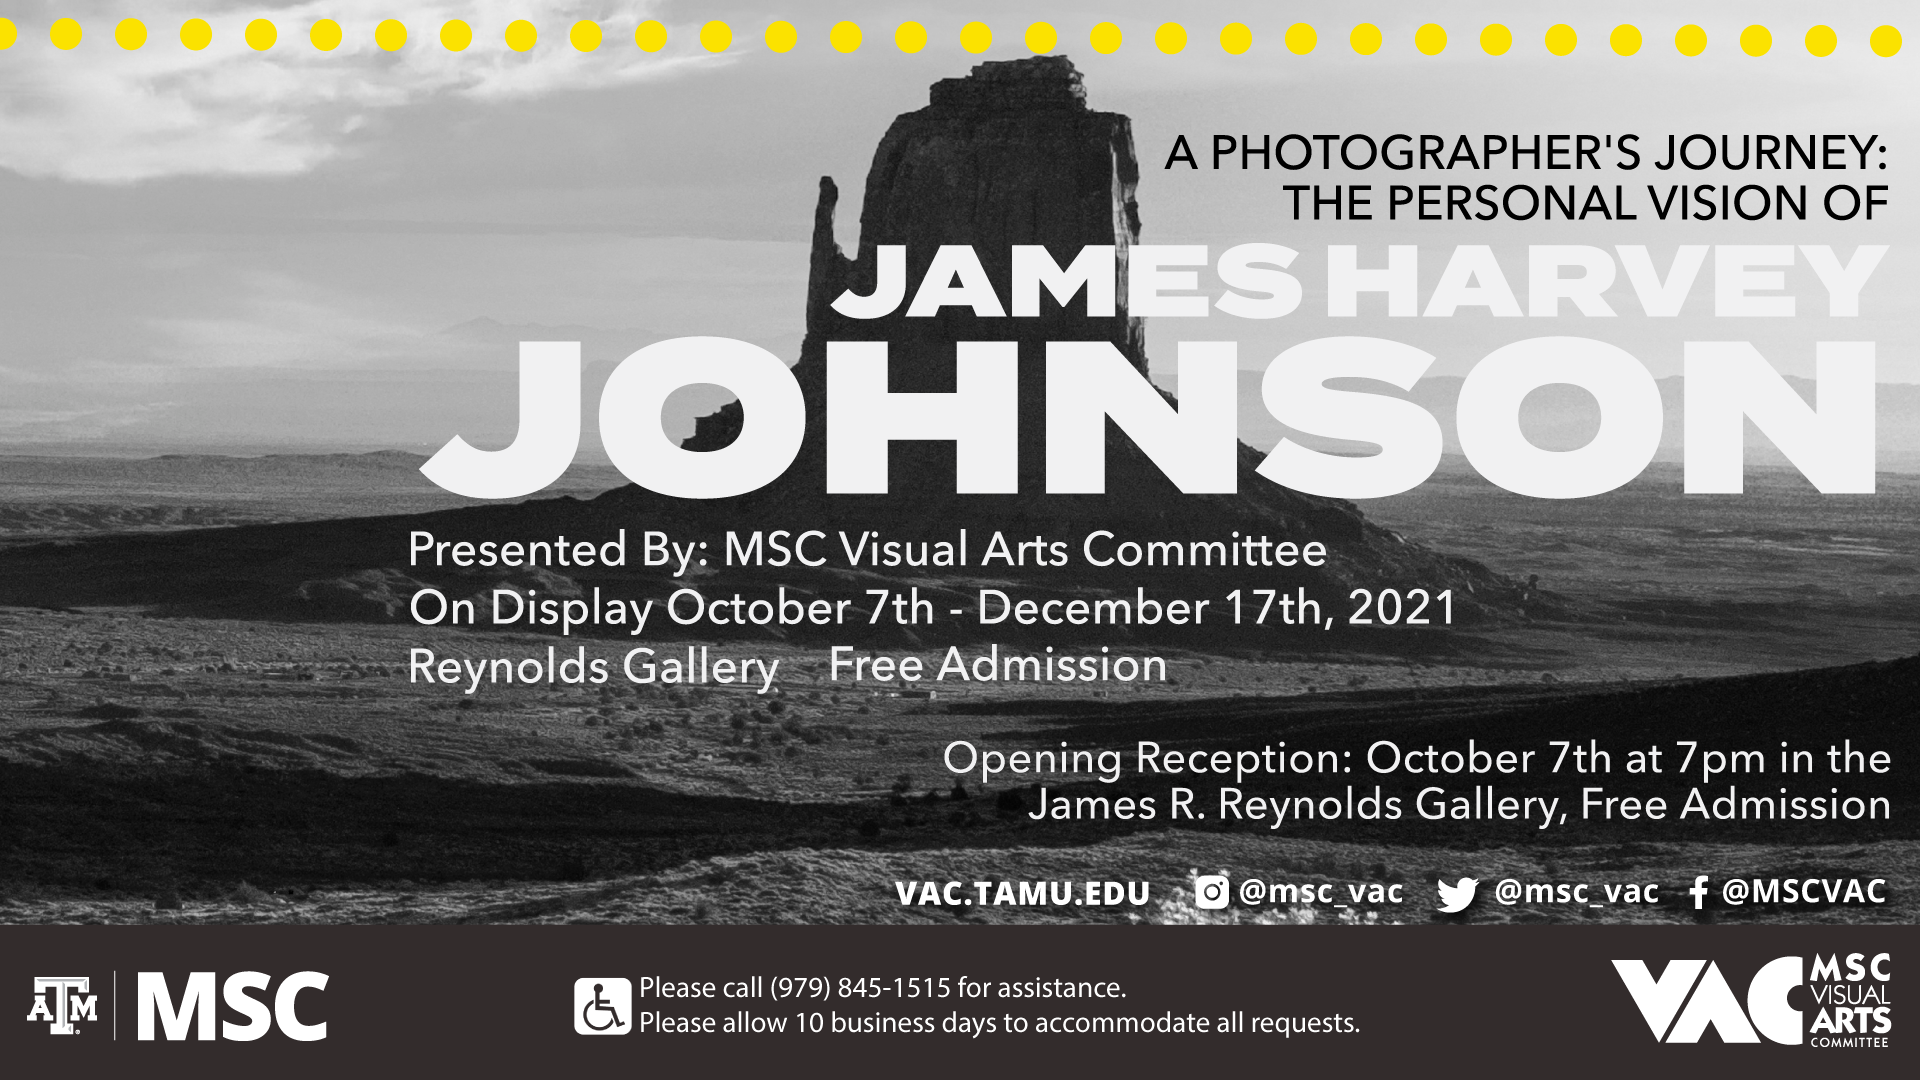 A Photographer's Journey: The Personal Vision of James Harvey Johnson. Presented by MSC Visual Arts Committee. On Display: October 7th to December 17, 2021, Opening Reception: October 7th at 7 p.m. in the James R. Reynolds Gallery, Free Admission. Website: vac.tamu.edu, Instagram: @msc_vac, Twitter: @msc_vac, Facebook: @MSCVAC. Please call 979.845.1515 for assistance. Please allow 10 business days to accommodate all requests.